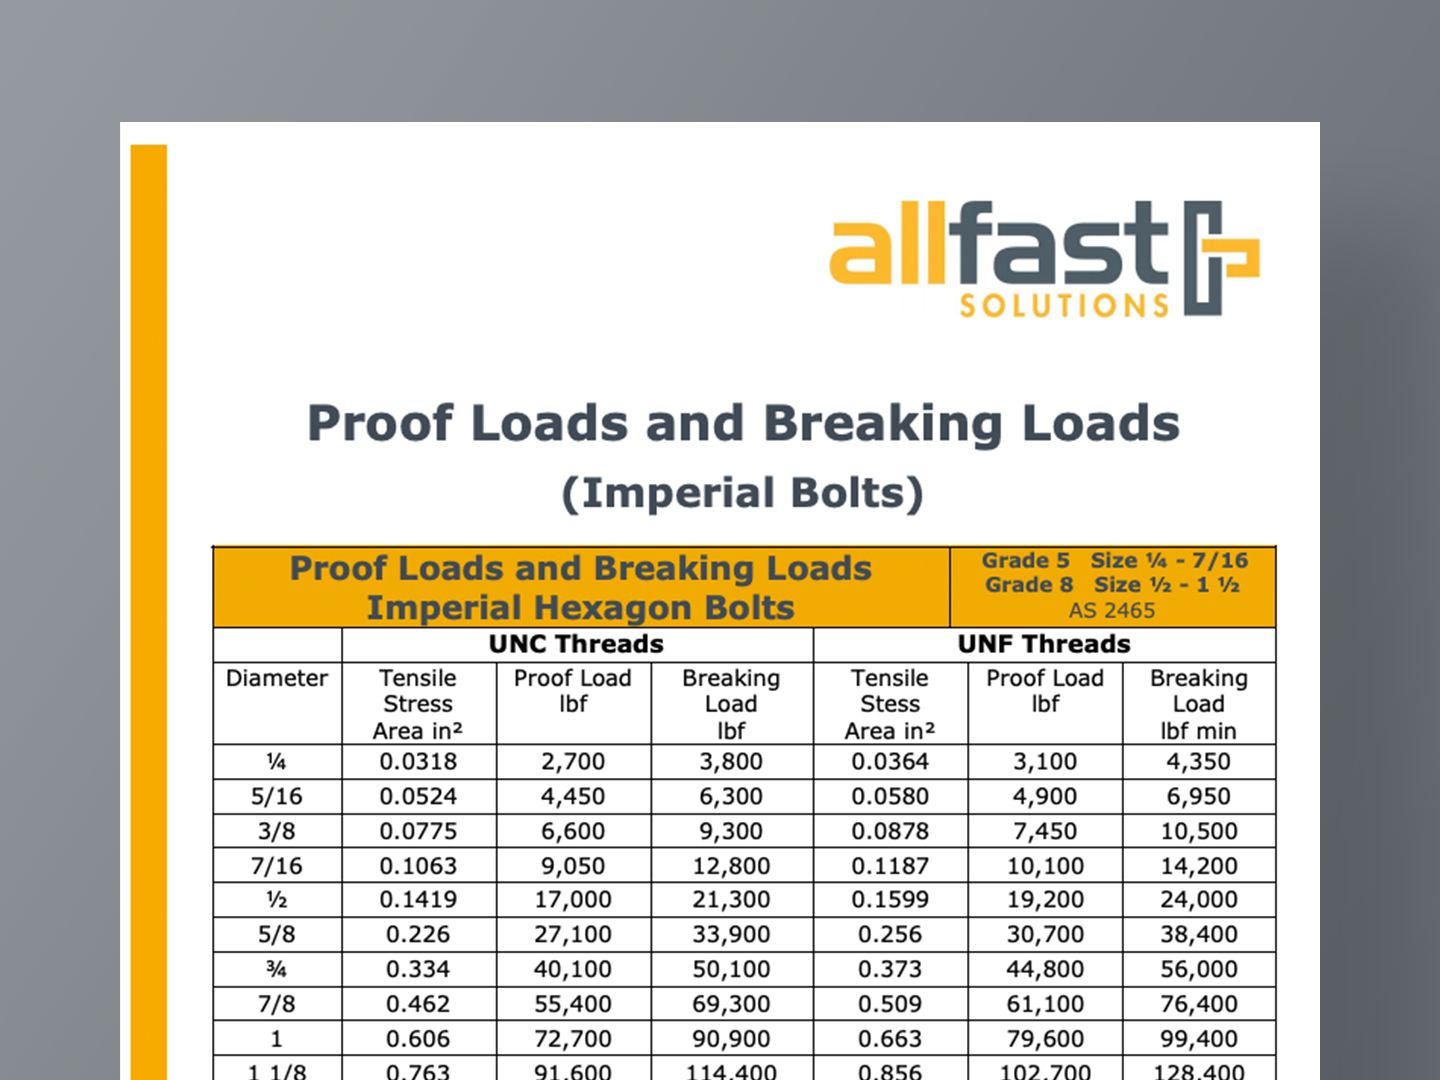 Proof Loads and Breaking Loads (Imperial Bolts)